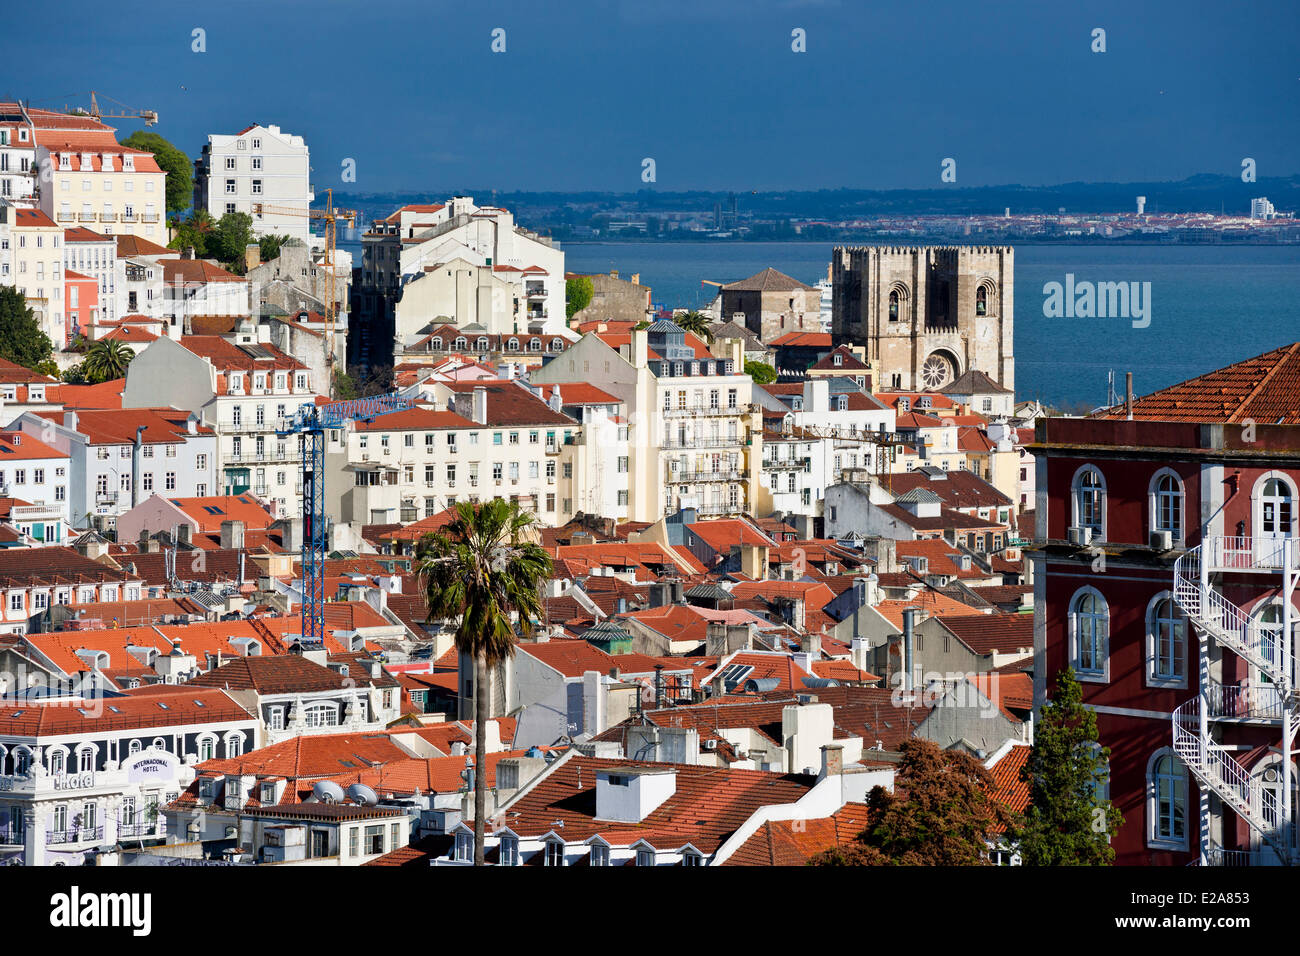 Portugal, Lisbon, panorama from the viewpoint Sao Pedro de Alcantara - Stock Image